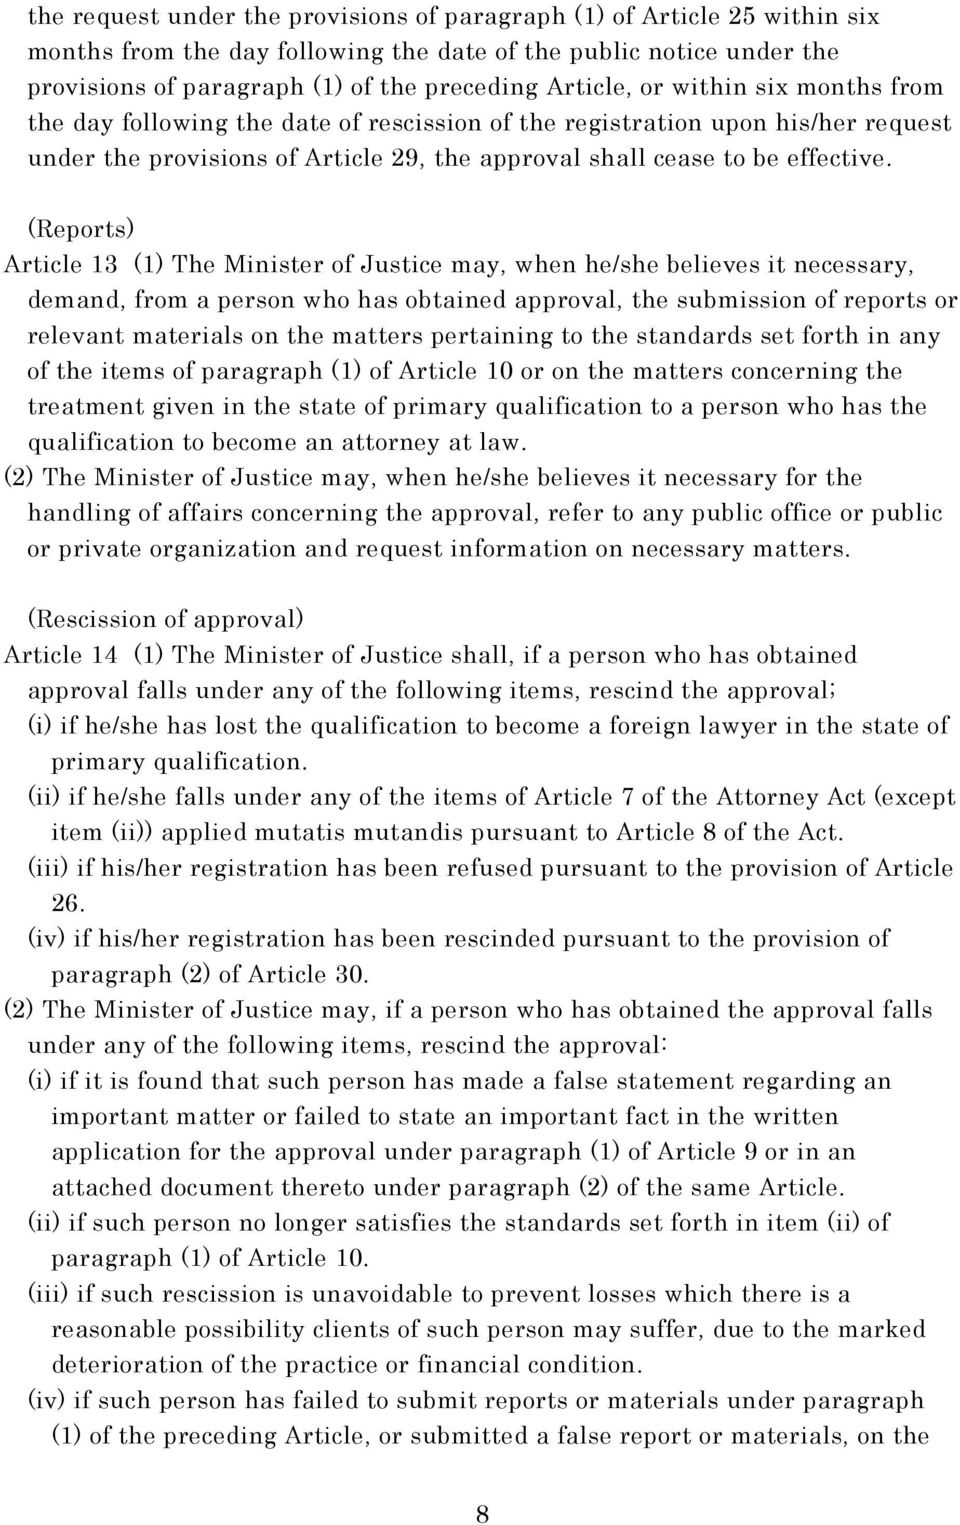 (Reports) Article 13 (1) The Minister of Justice may, when he/she believes it necessary, demand, from a person who has obtained approval, the submission of reports or relevant materials on the